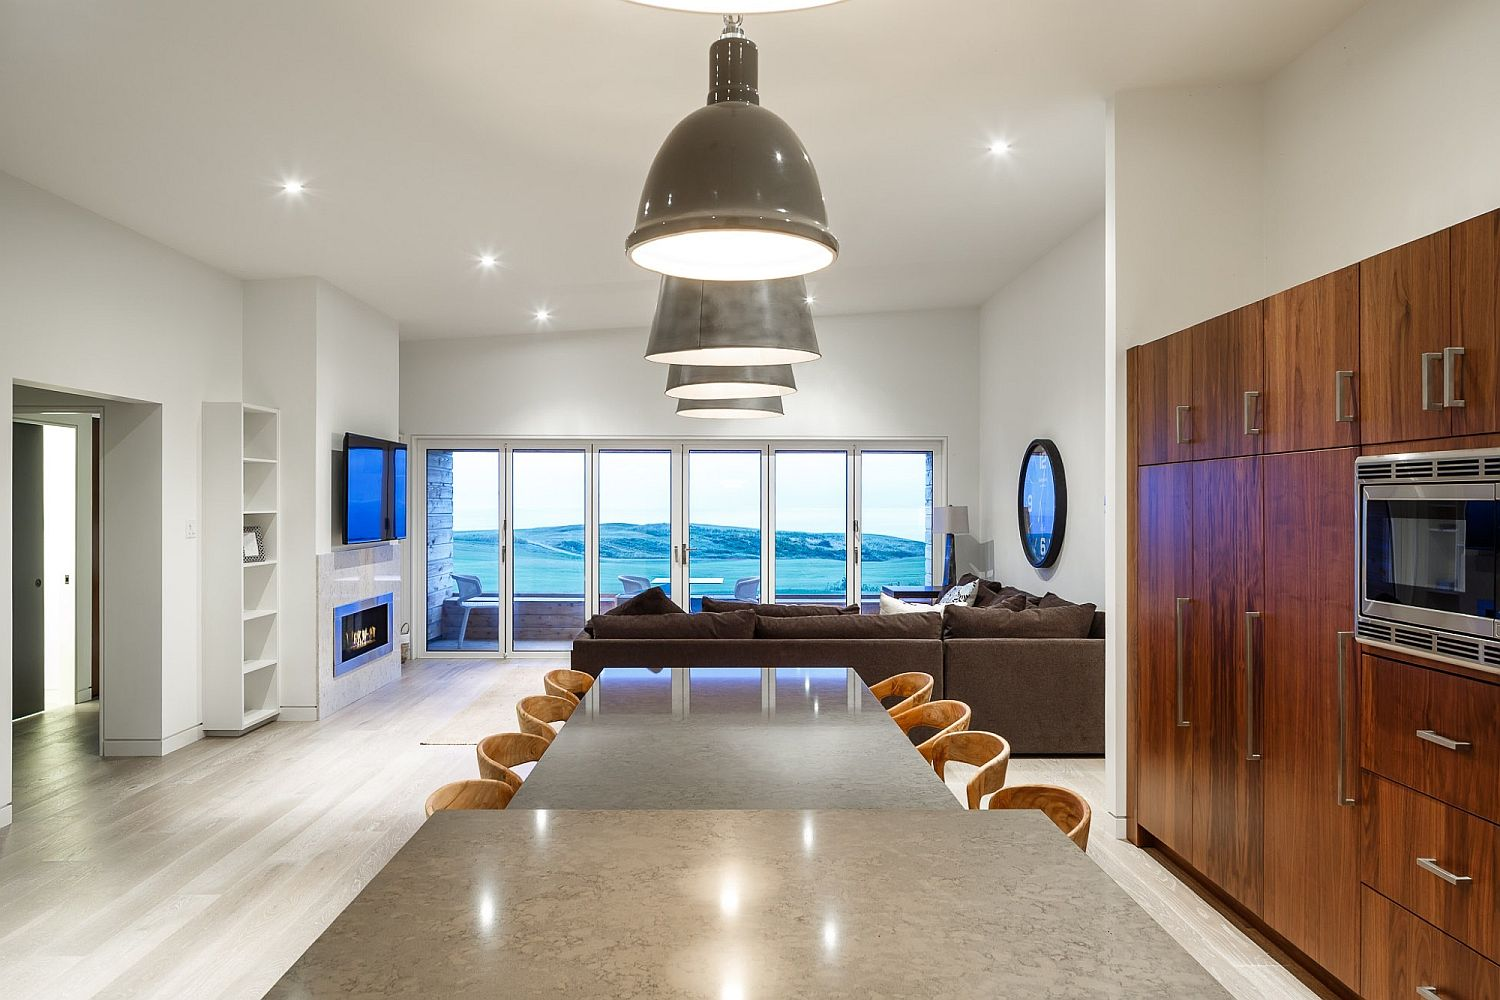 Expansive-and-open-dining-room-next-to-living-area-with-ocean-views